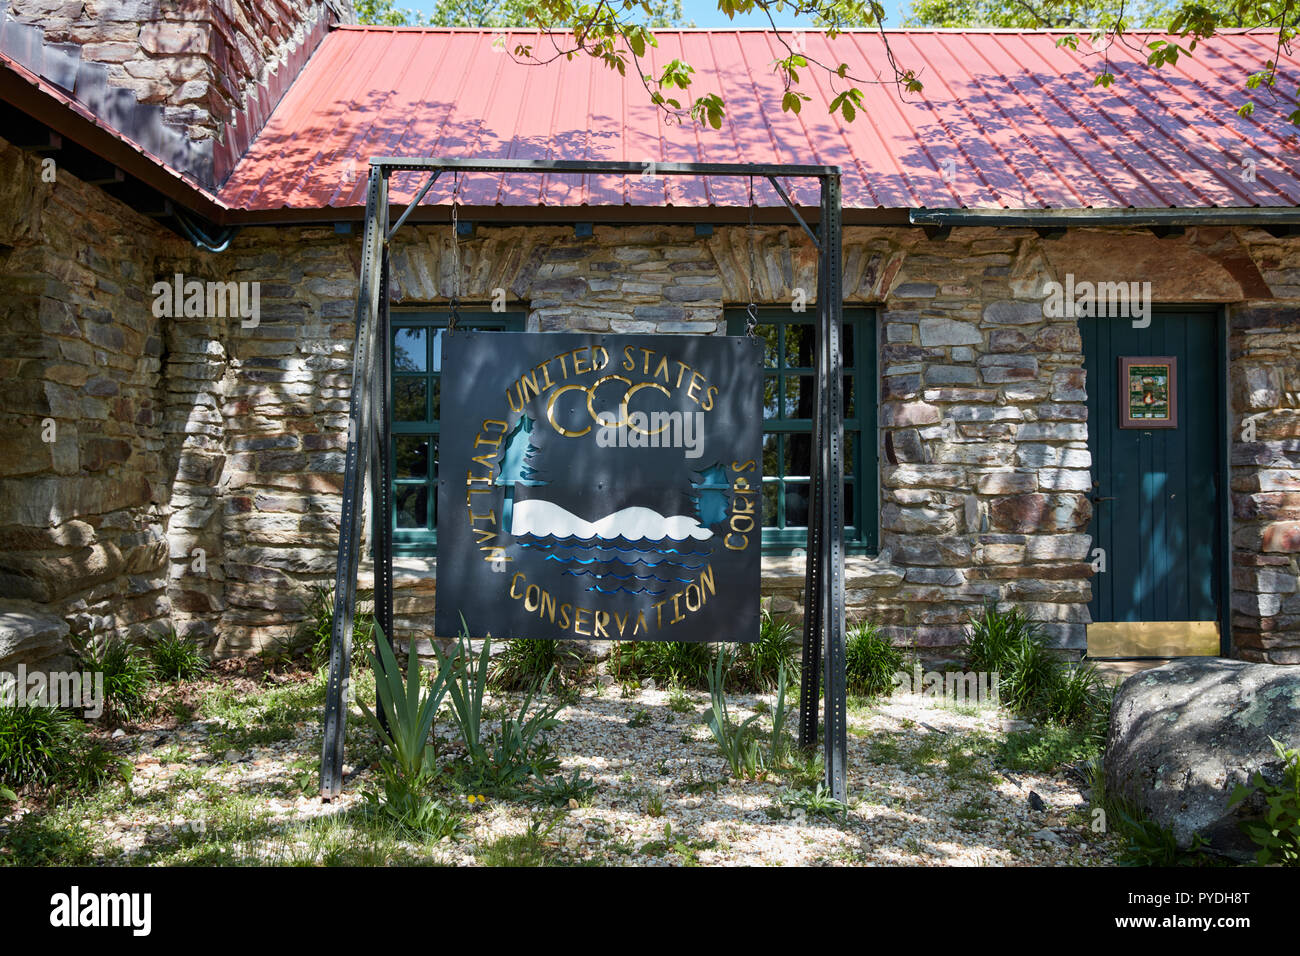 Civilian Conservation Corps sign at Cheaha State Park Observation Tower, Alabama - Stock Image